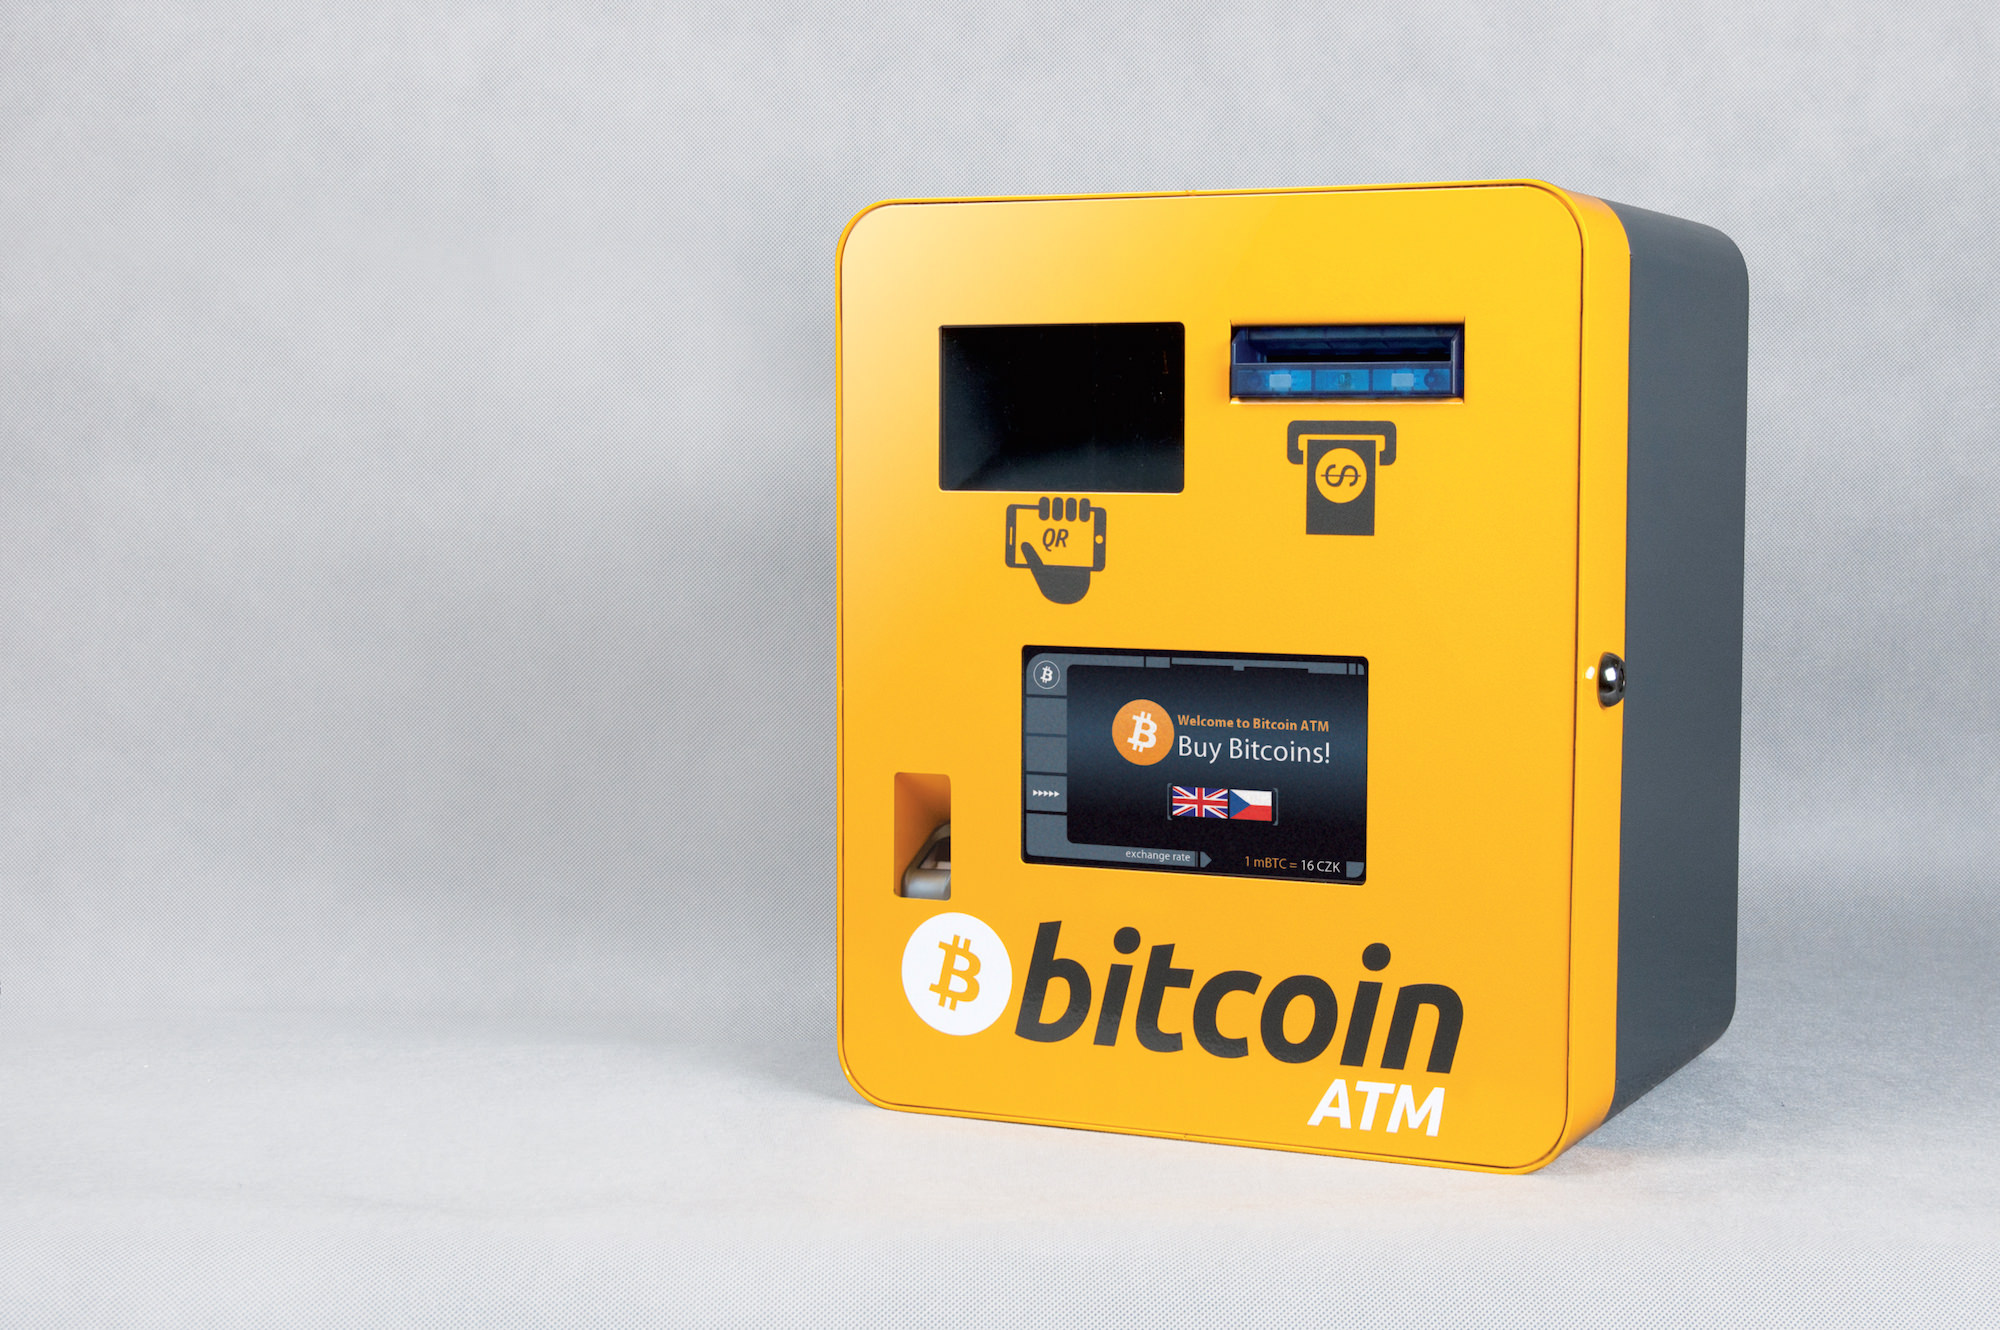 Bitcoin ATM Business: How To Get Started